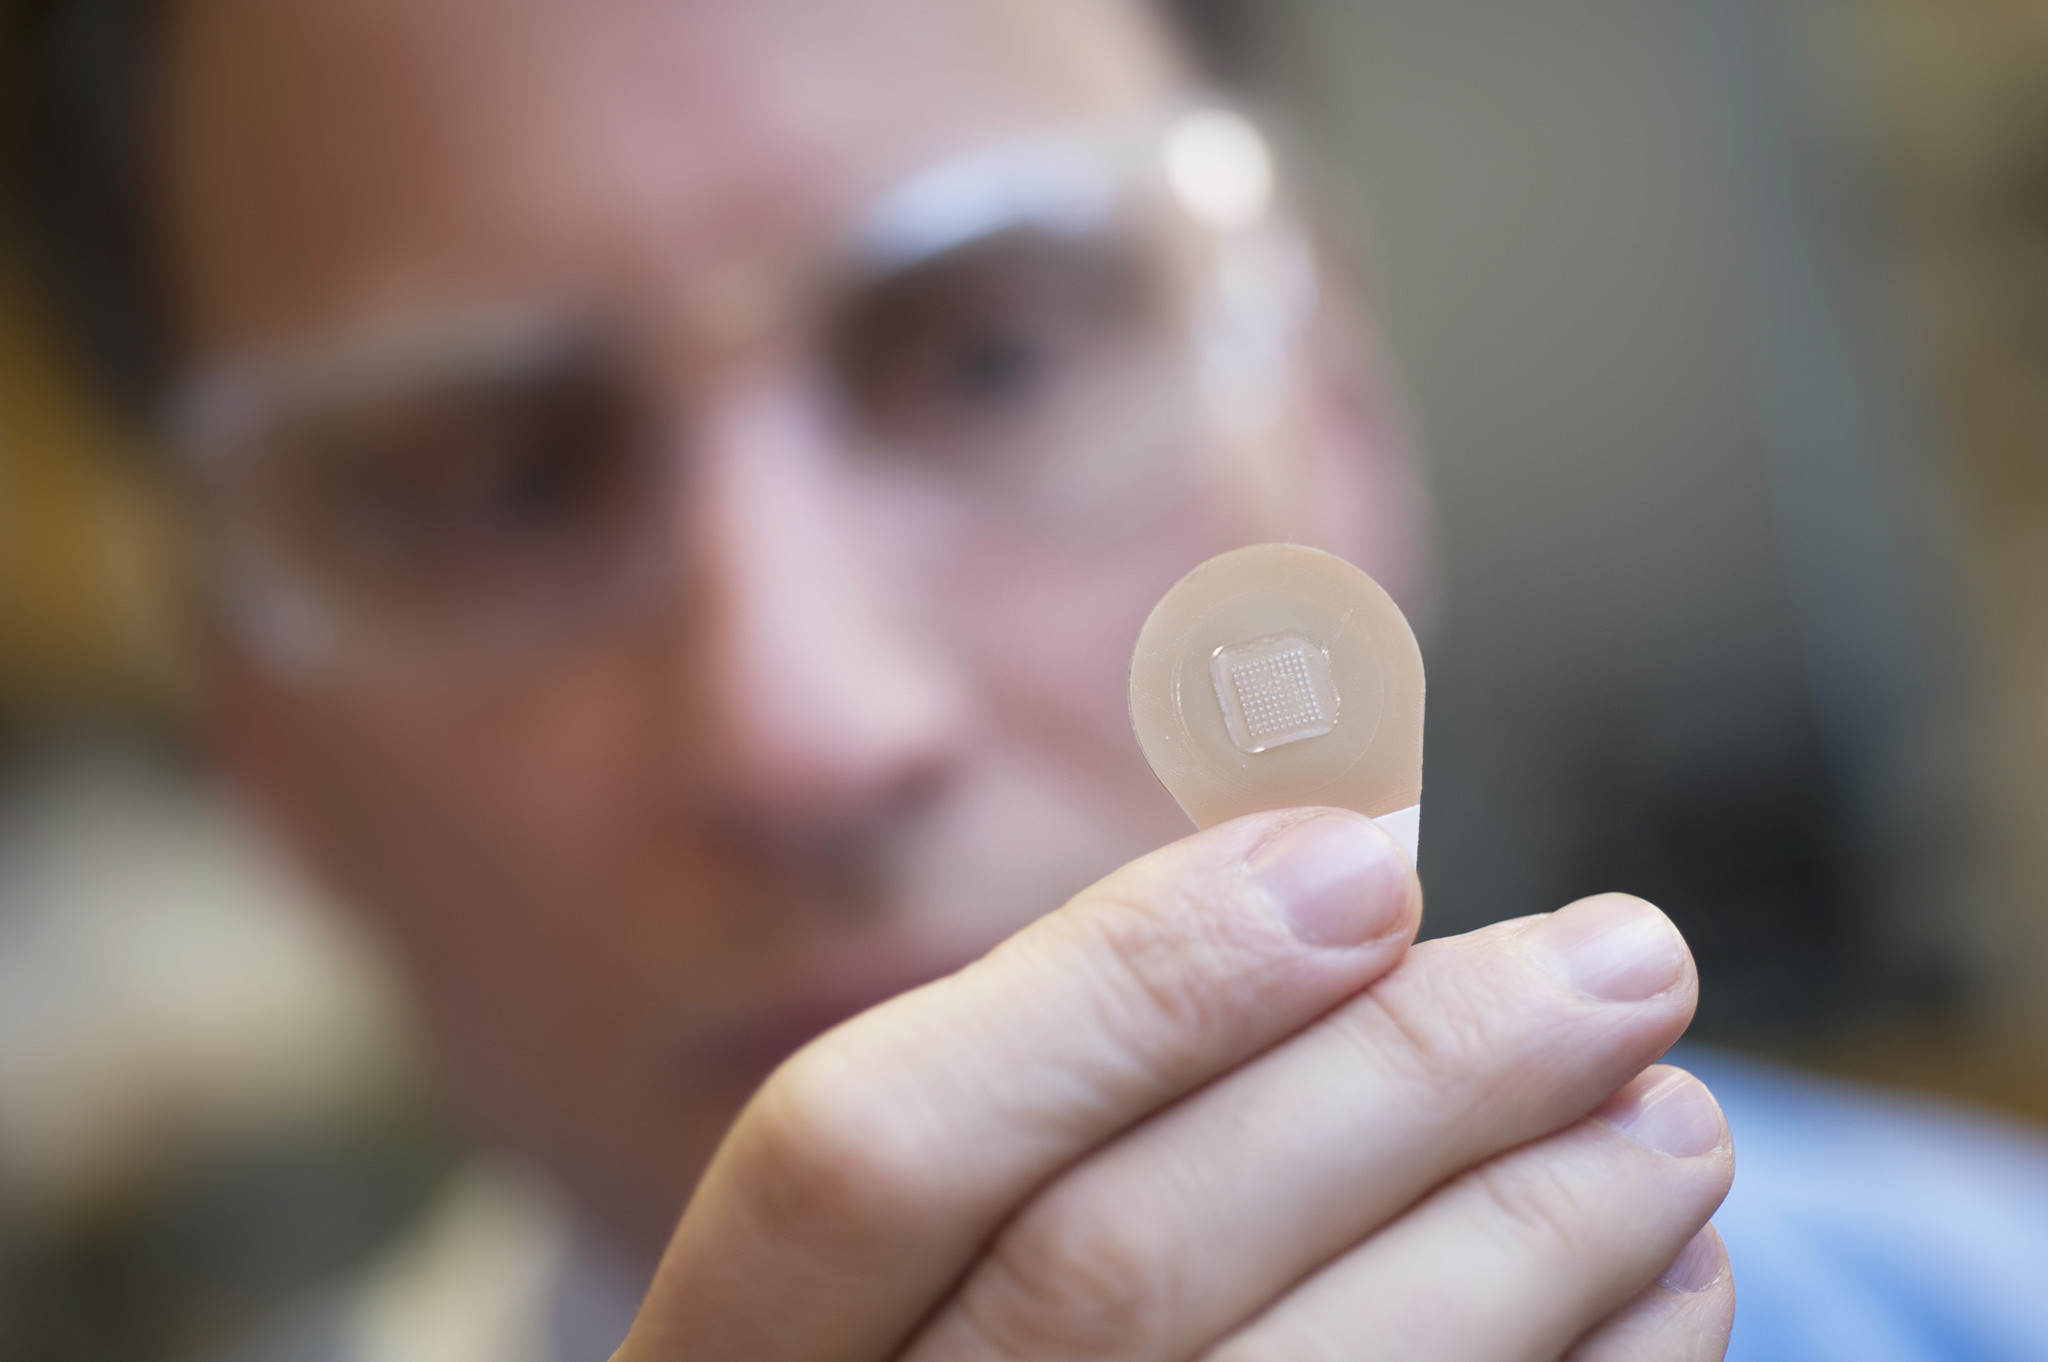 Mark Prausnitz, who develops microneedle technology at Georgia Tech, holds a vaccine patch containing needles that dissolve into the skin.